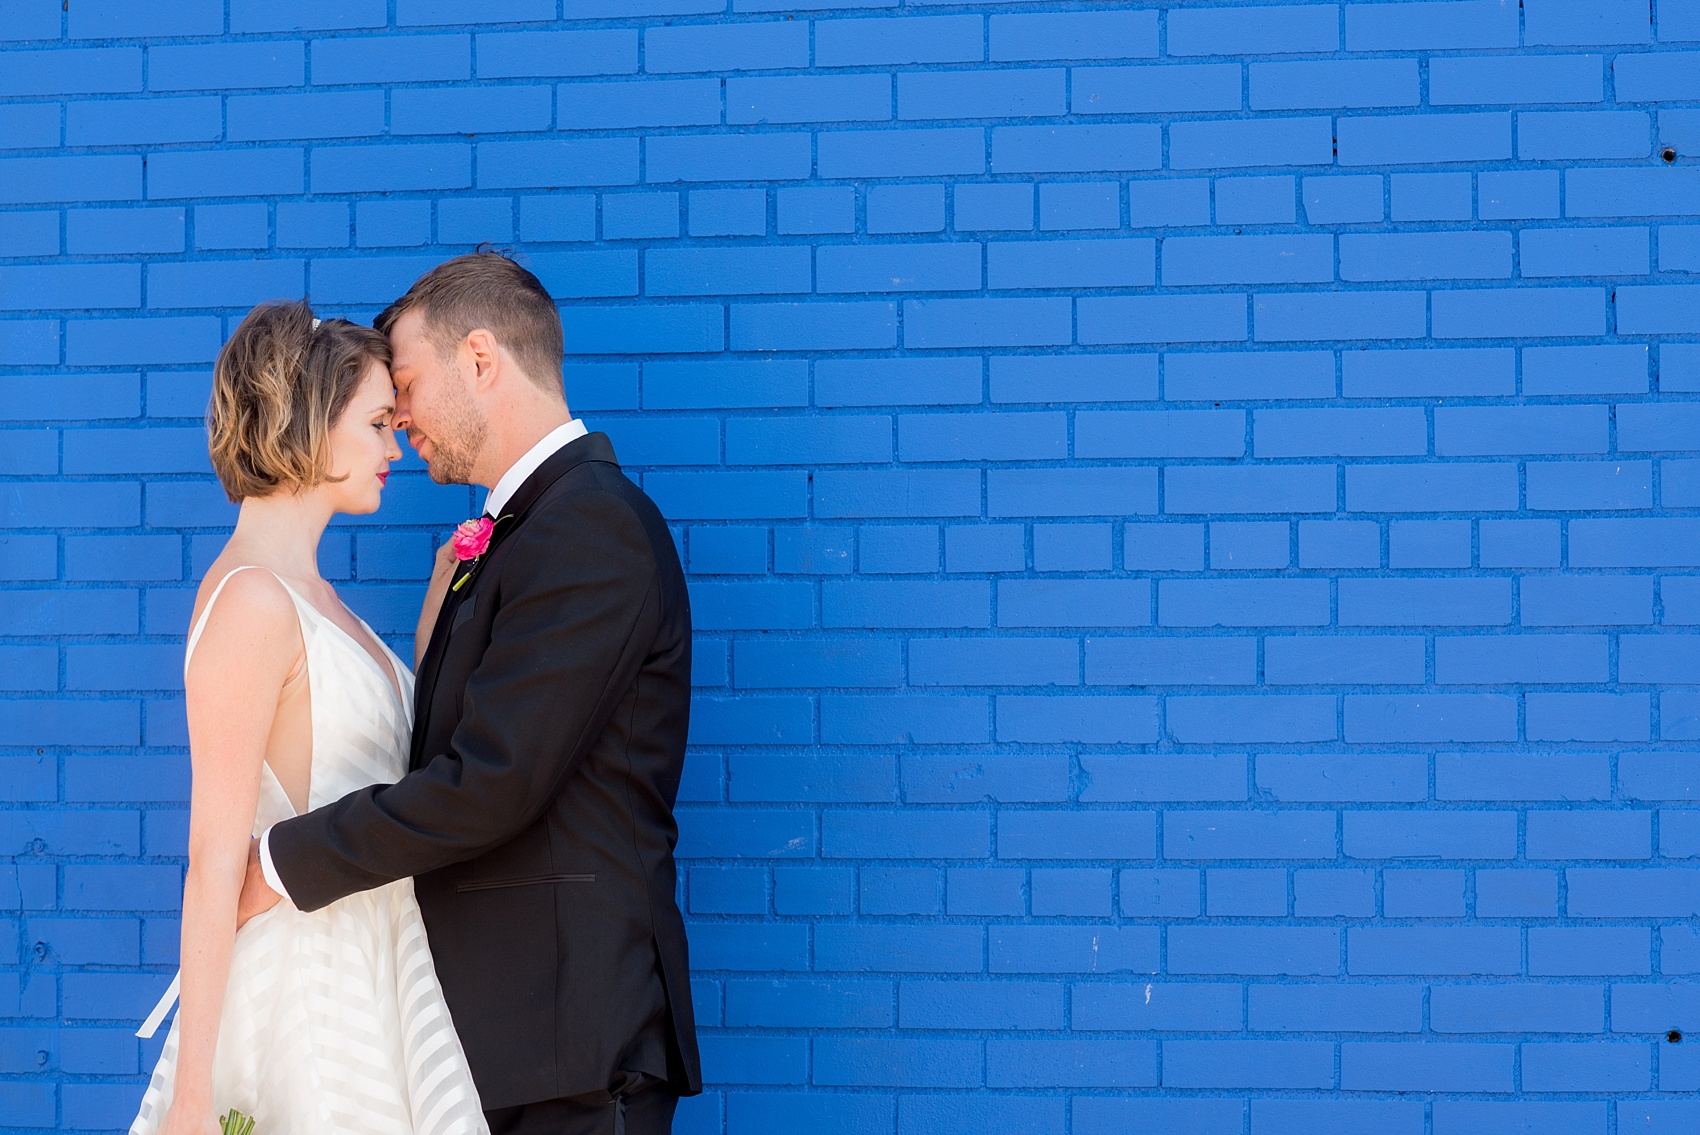 Mikkel Paige Photography photo of Dobbin St Brooklyn wedding. Planning and coordination by Color Pop Events. Tuxedo from The Black Tux for the groom, image against a colorful blue wall. Bride in a Hayley Paige white striped gown.